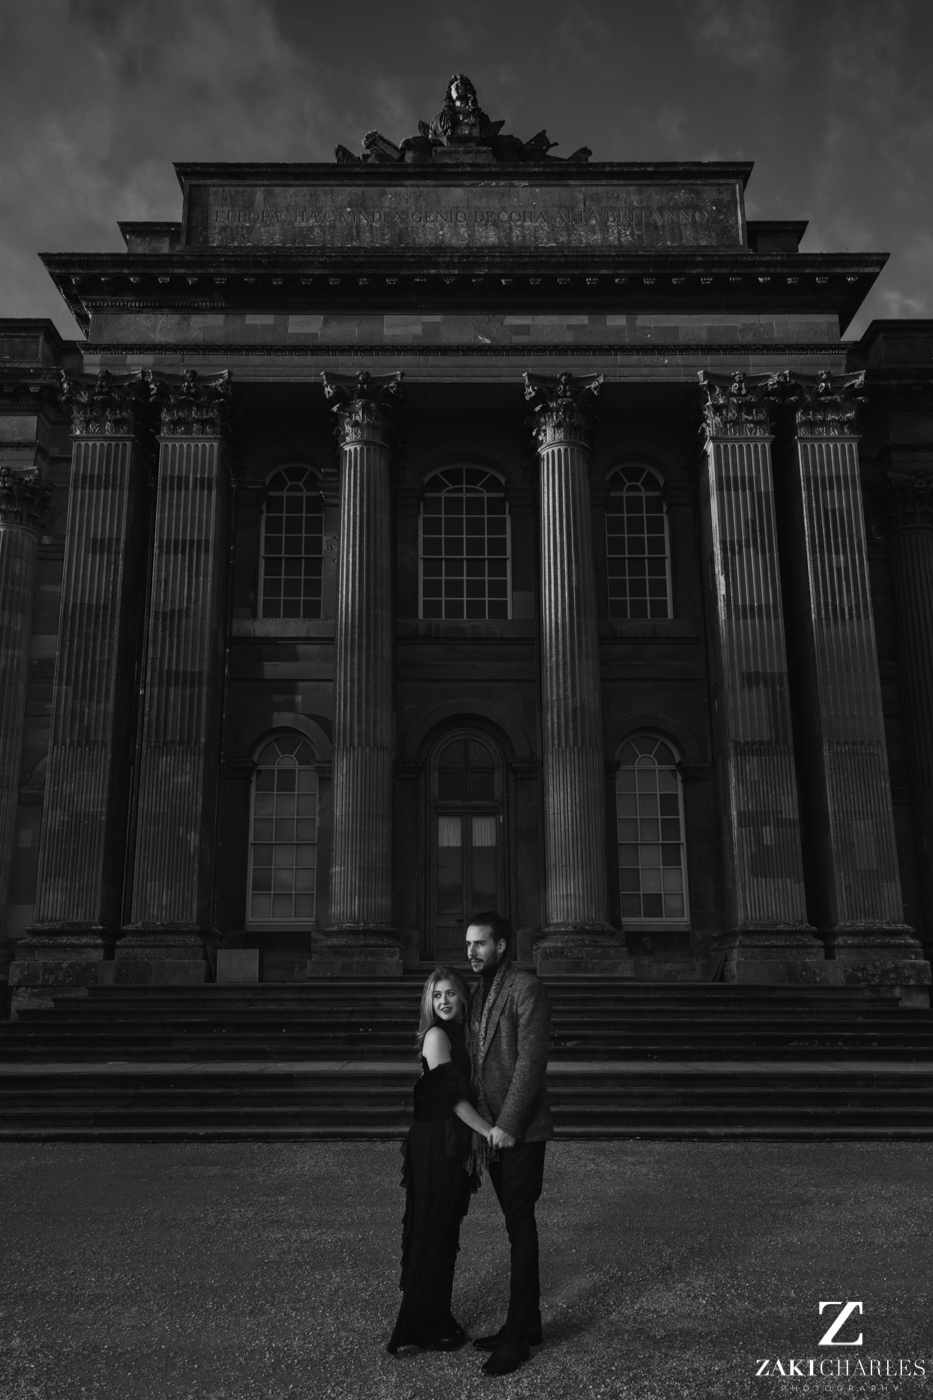 Blenheim Palace Engagement Session, AJ and Yannis, black and white, fine art photography